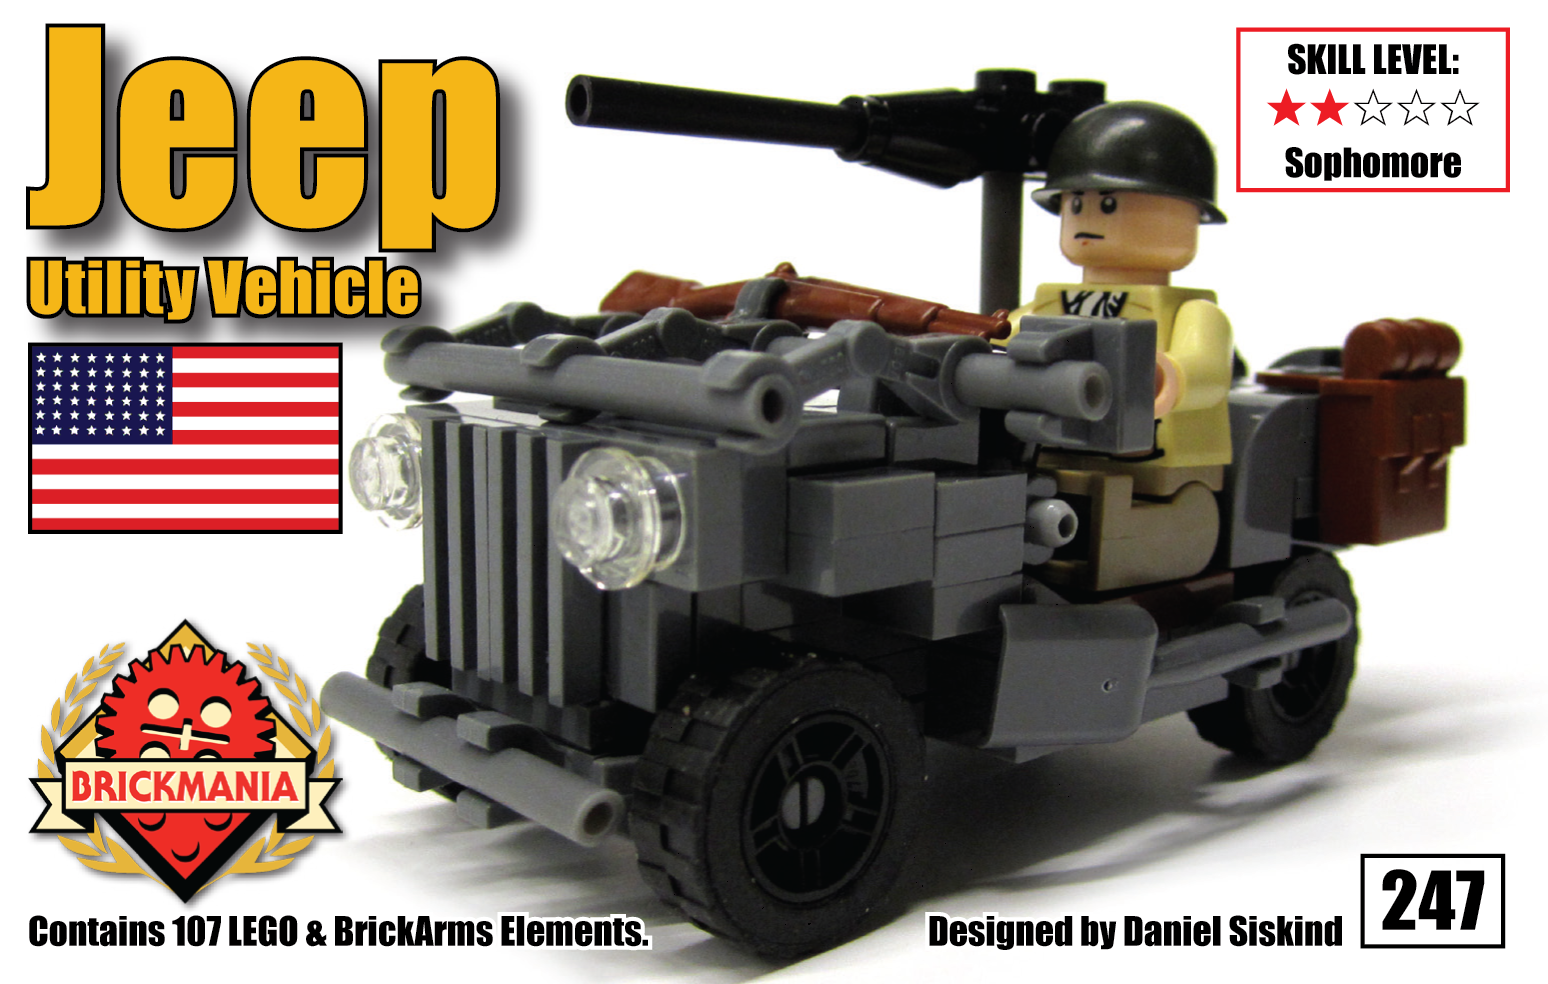 Brickmania's new 1/35 scale Jeep Utility Car Now Available